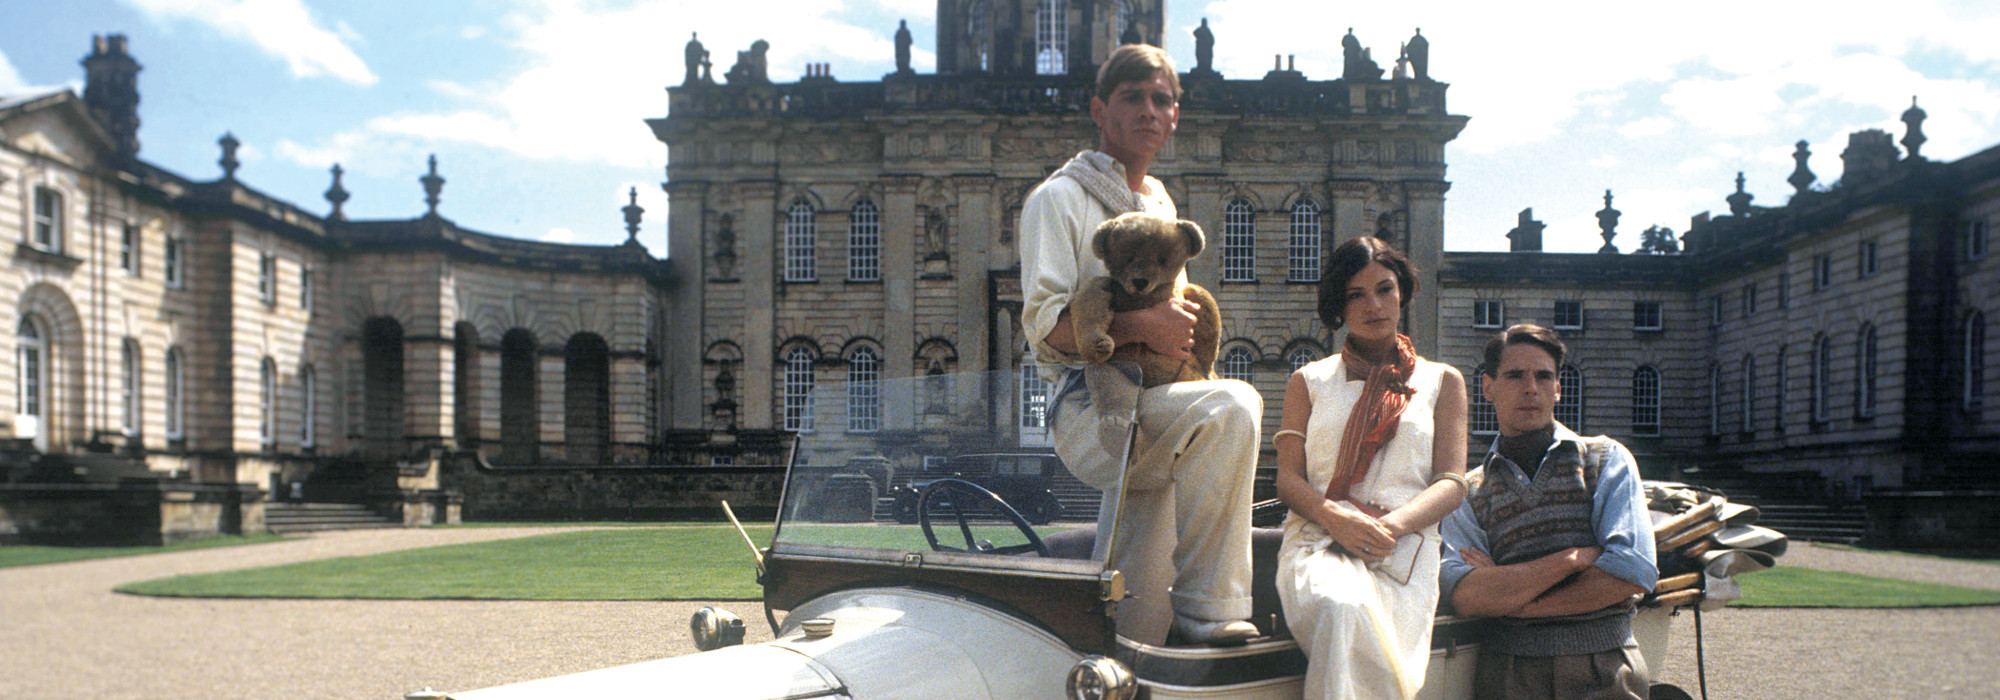 The Brideshead Festival: 75 Years of Print and Screen